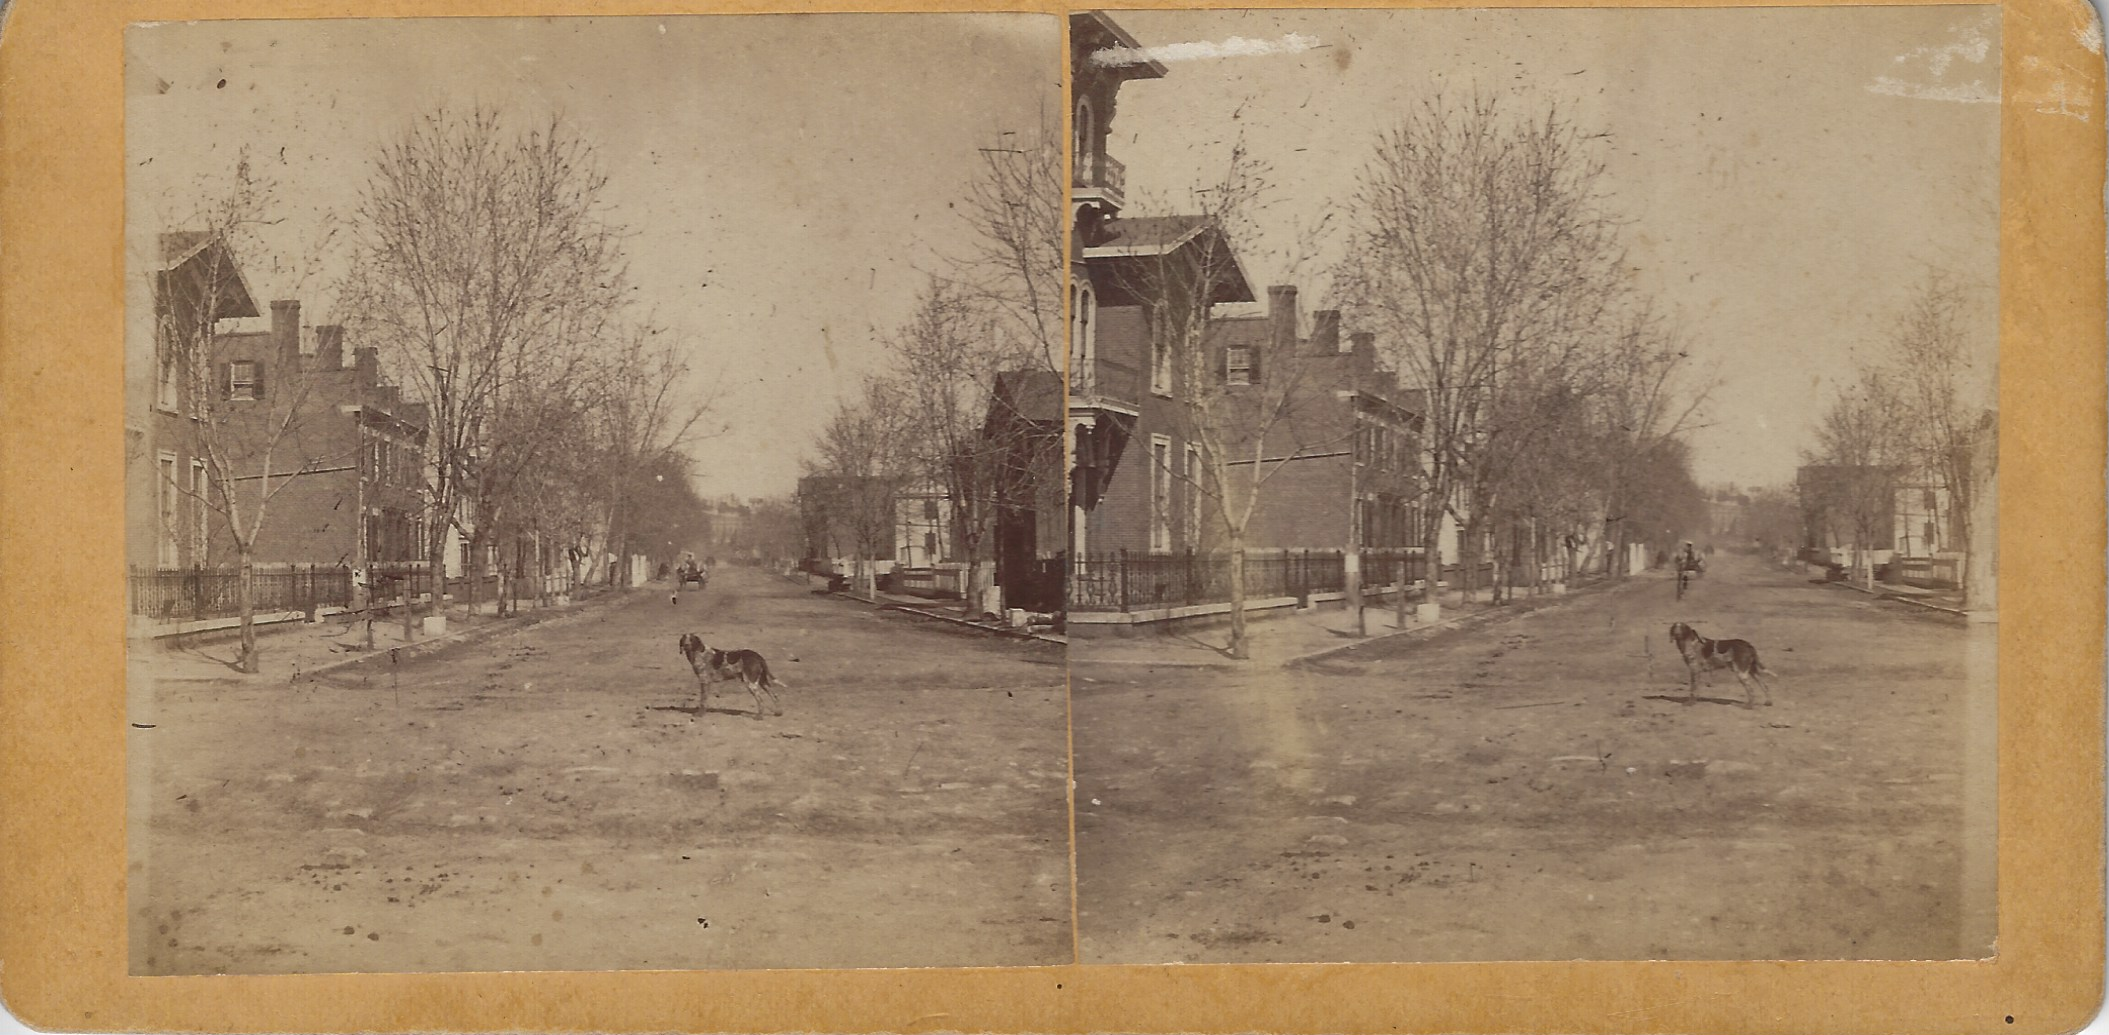 LJTP 100.297 - S. Root - Dean the Dog in Street - c1875